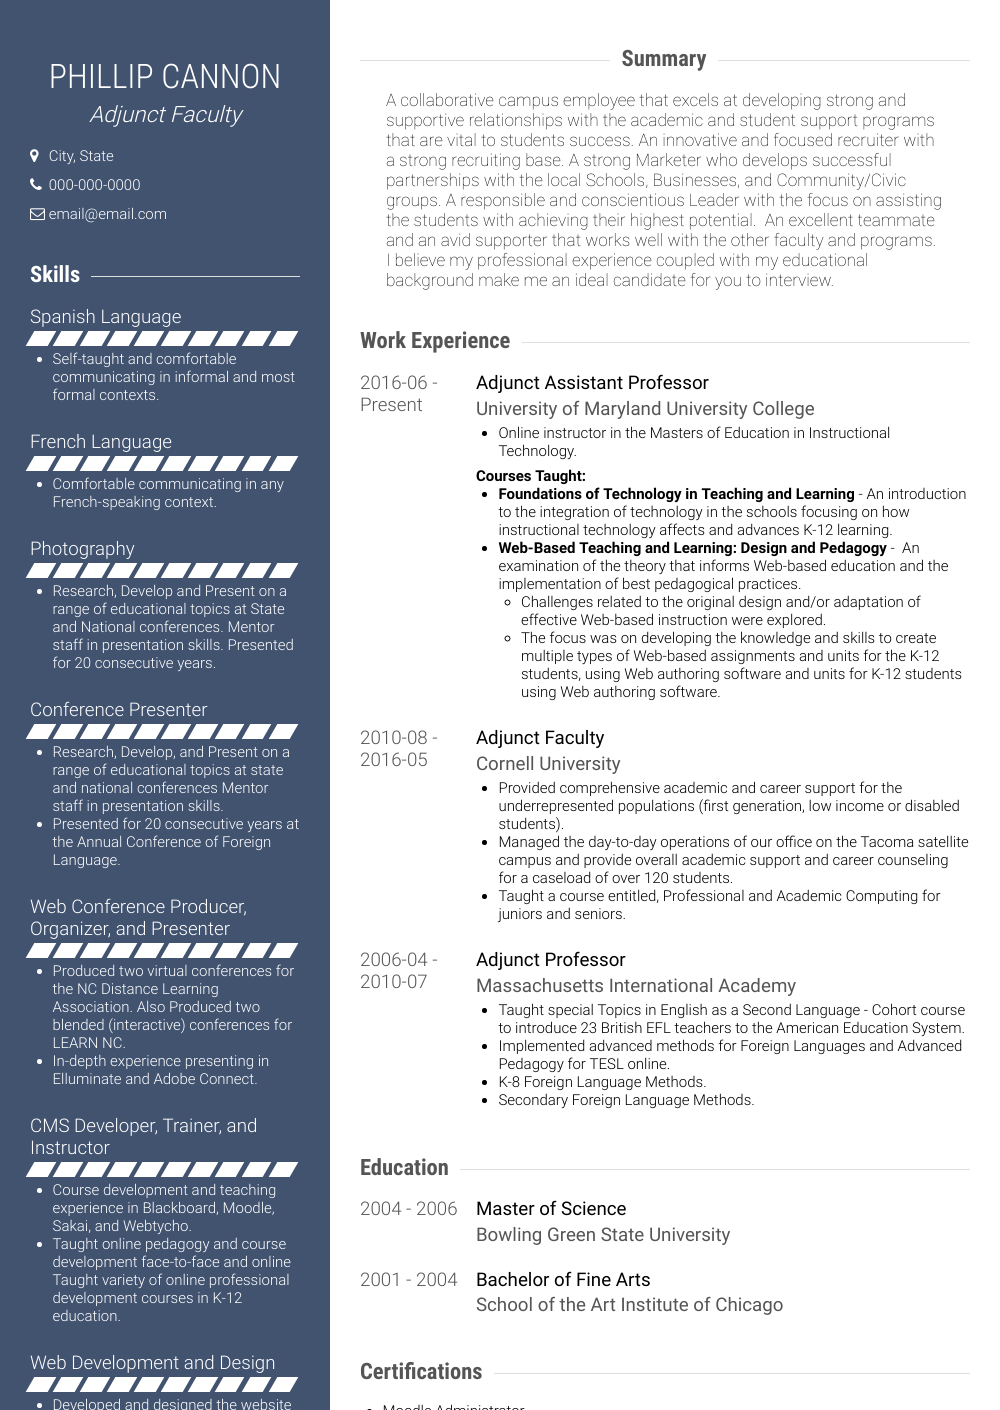 Adjunct Faculty Resume Sample and Template